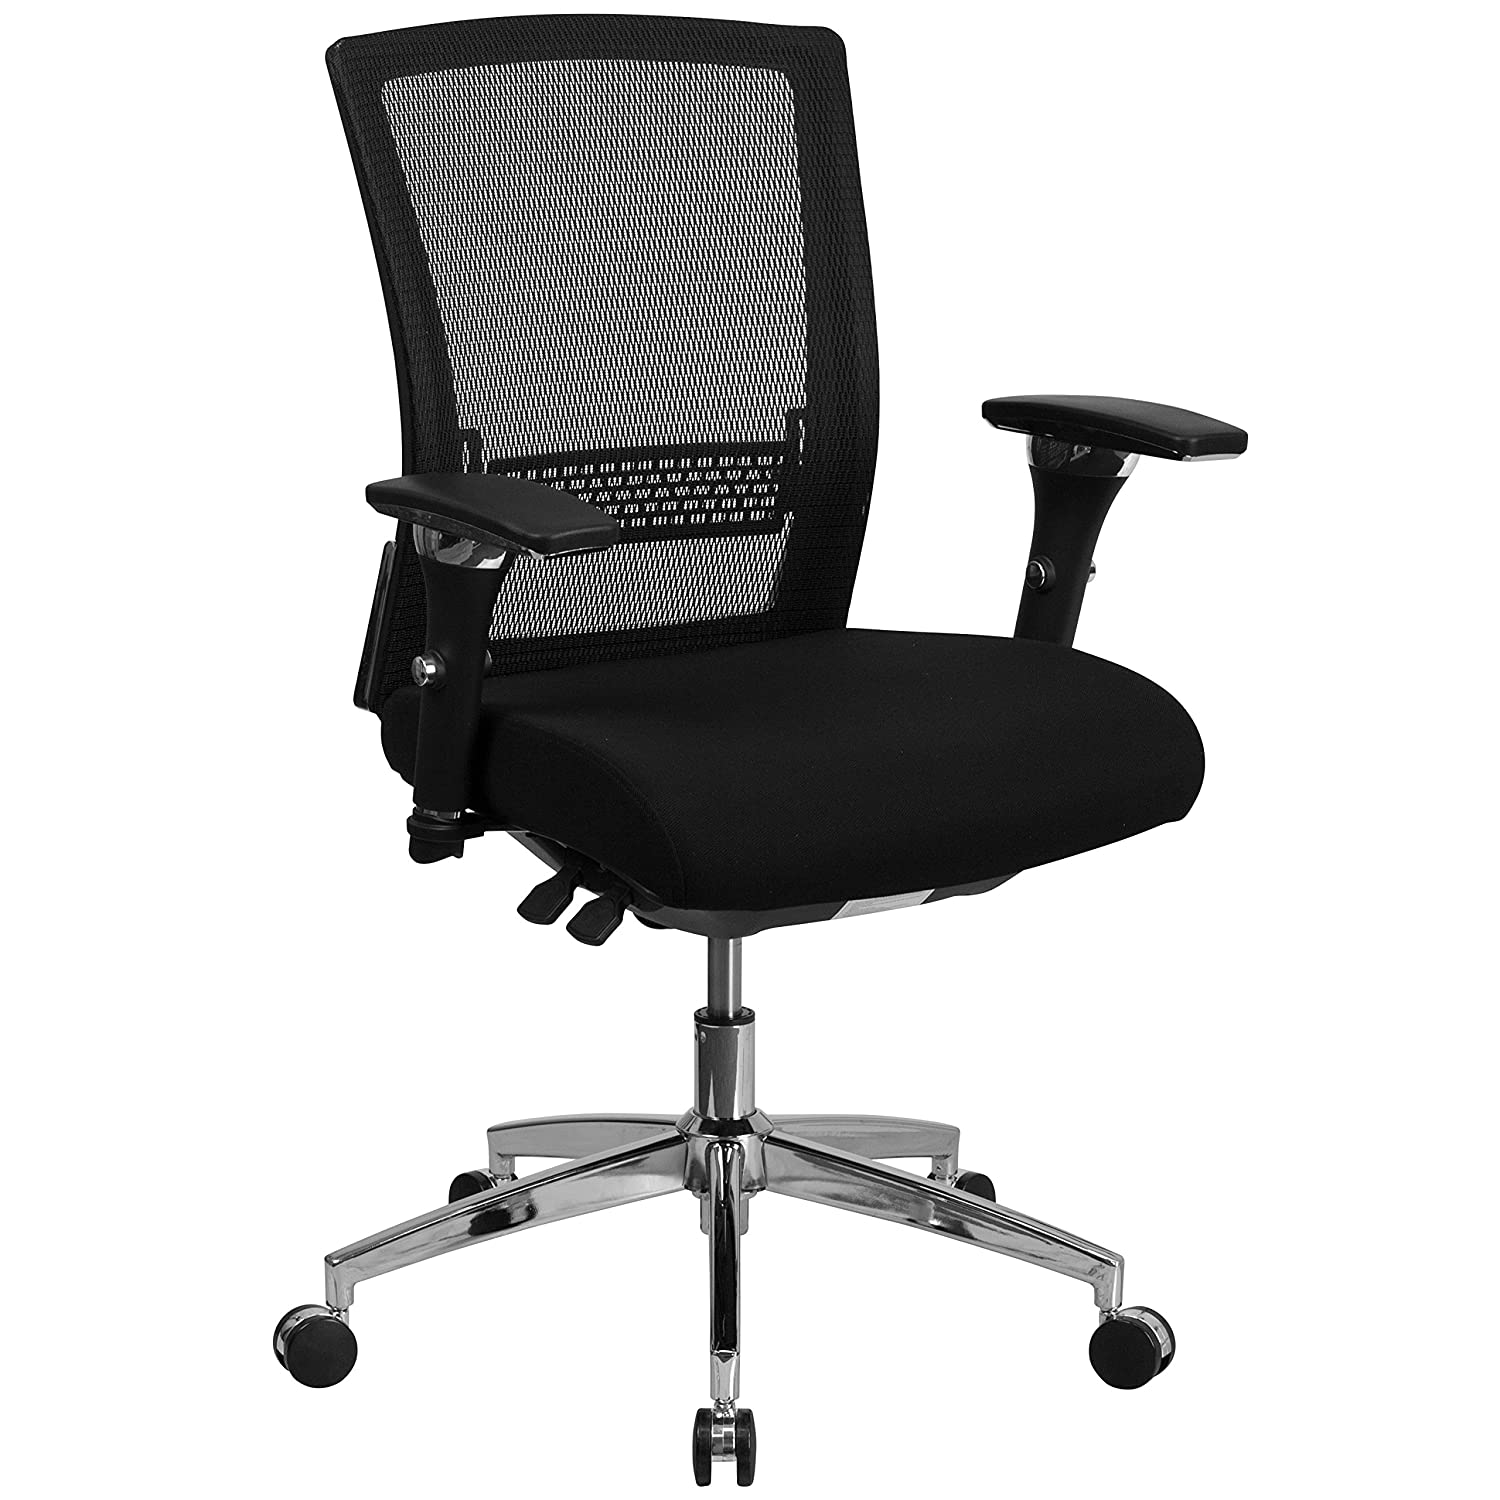 Flash Furniture HERCULES Series 24/7 Intensive Use 300 lb. Rated Black Mesh Multifunction Executive Swivel Chair with Seat Slider